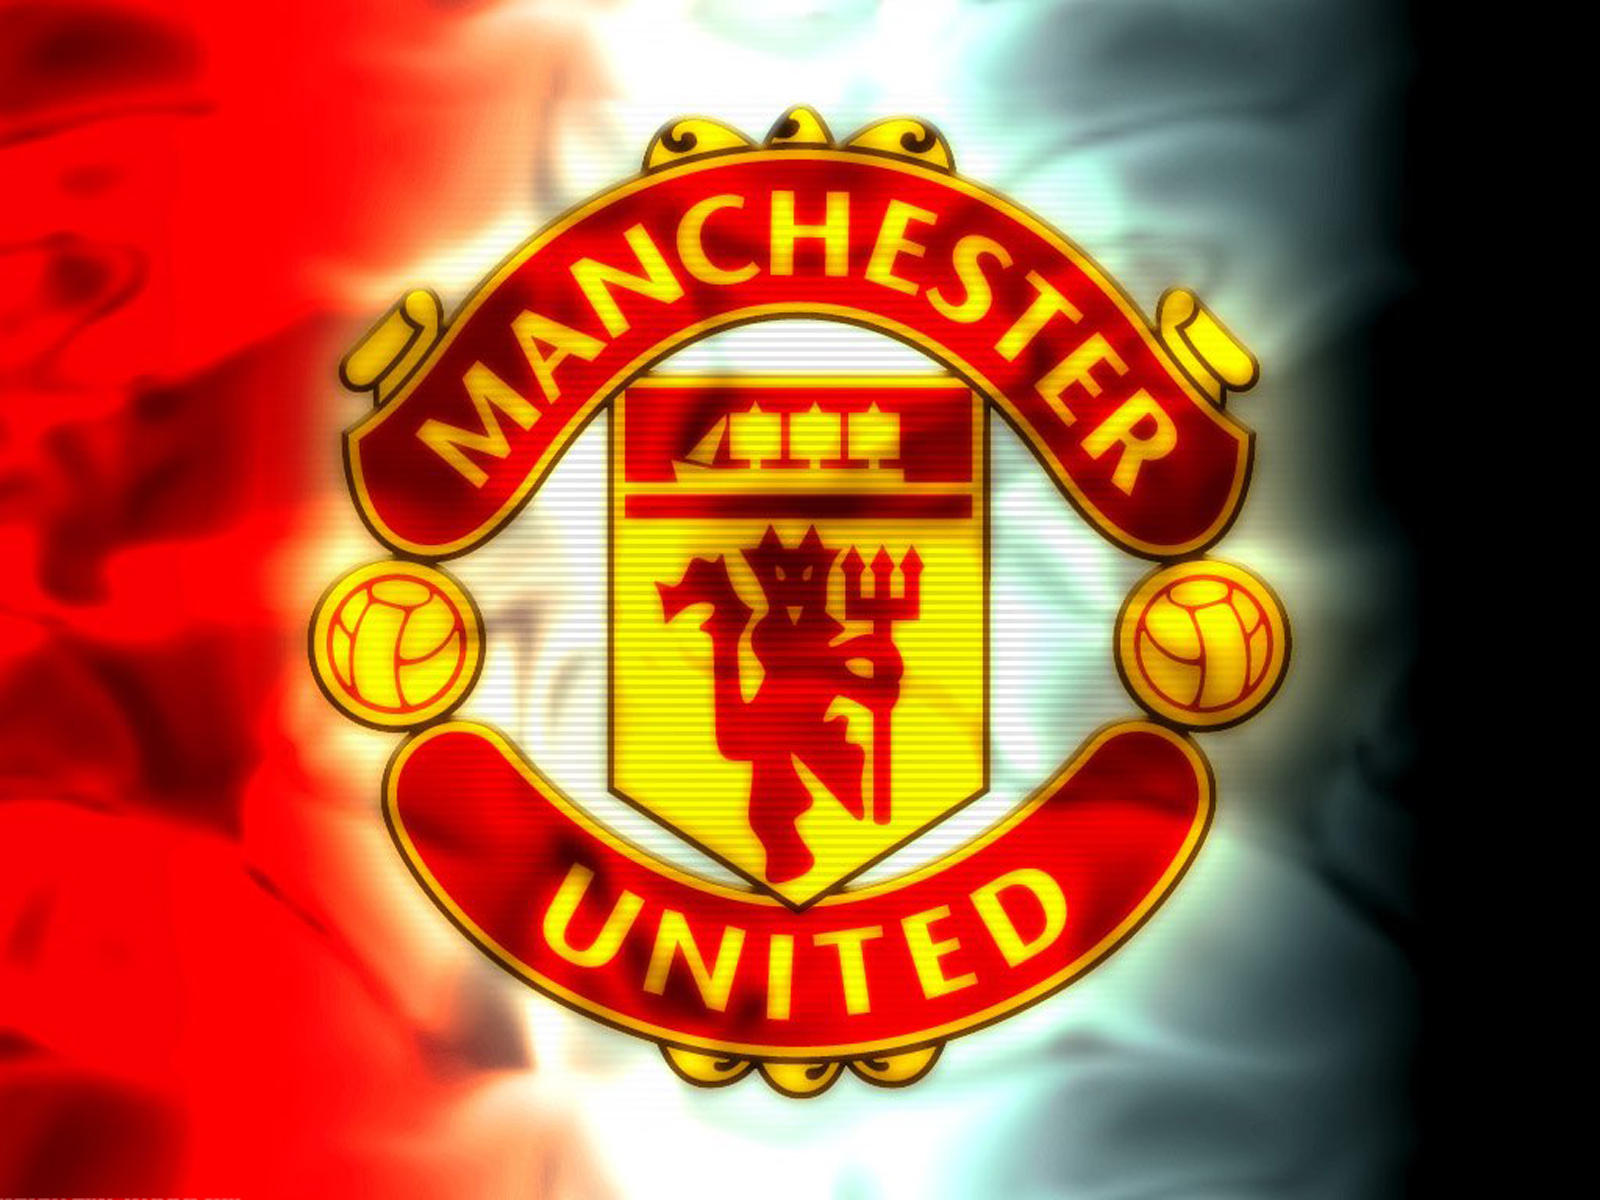 Manchester United Flag Wallpaper